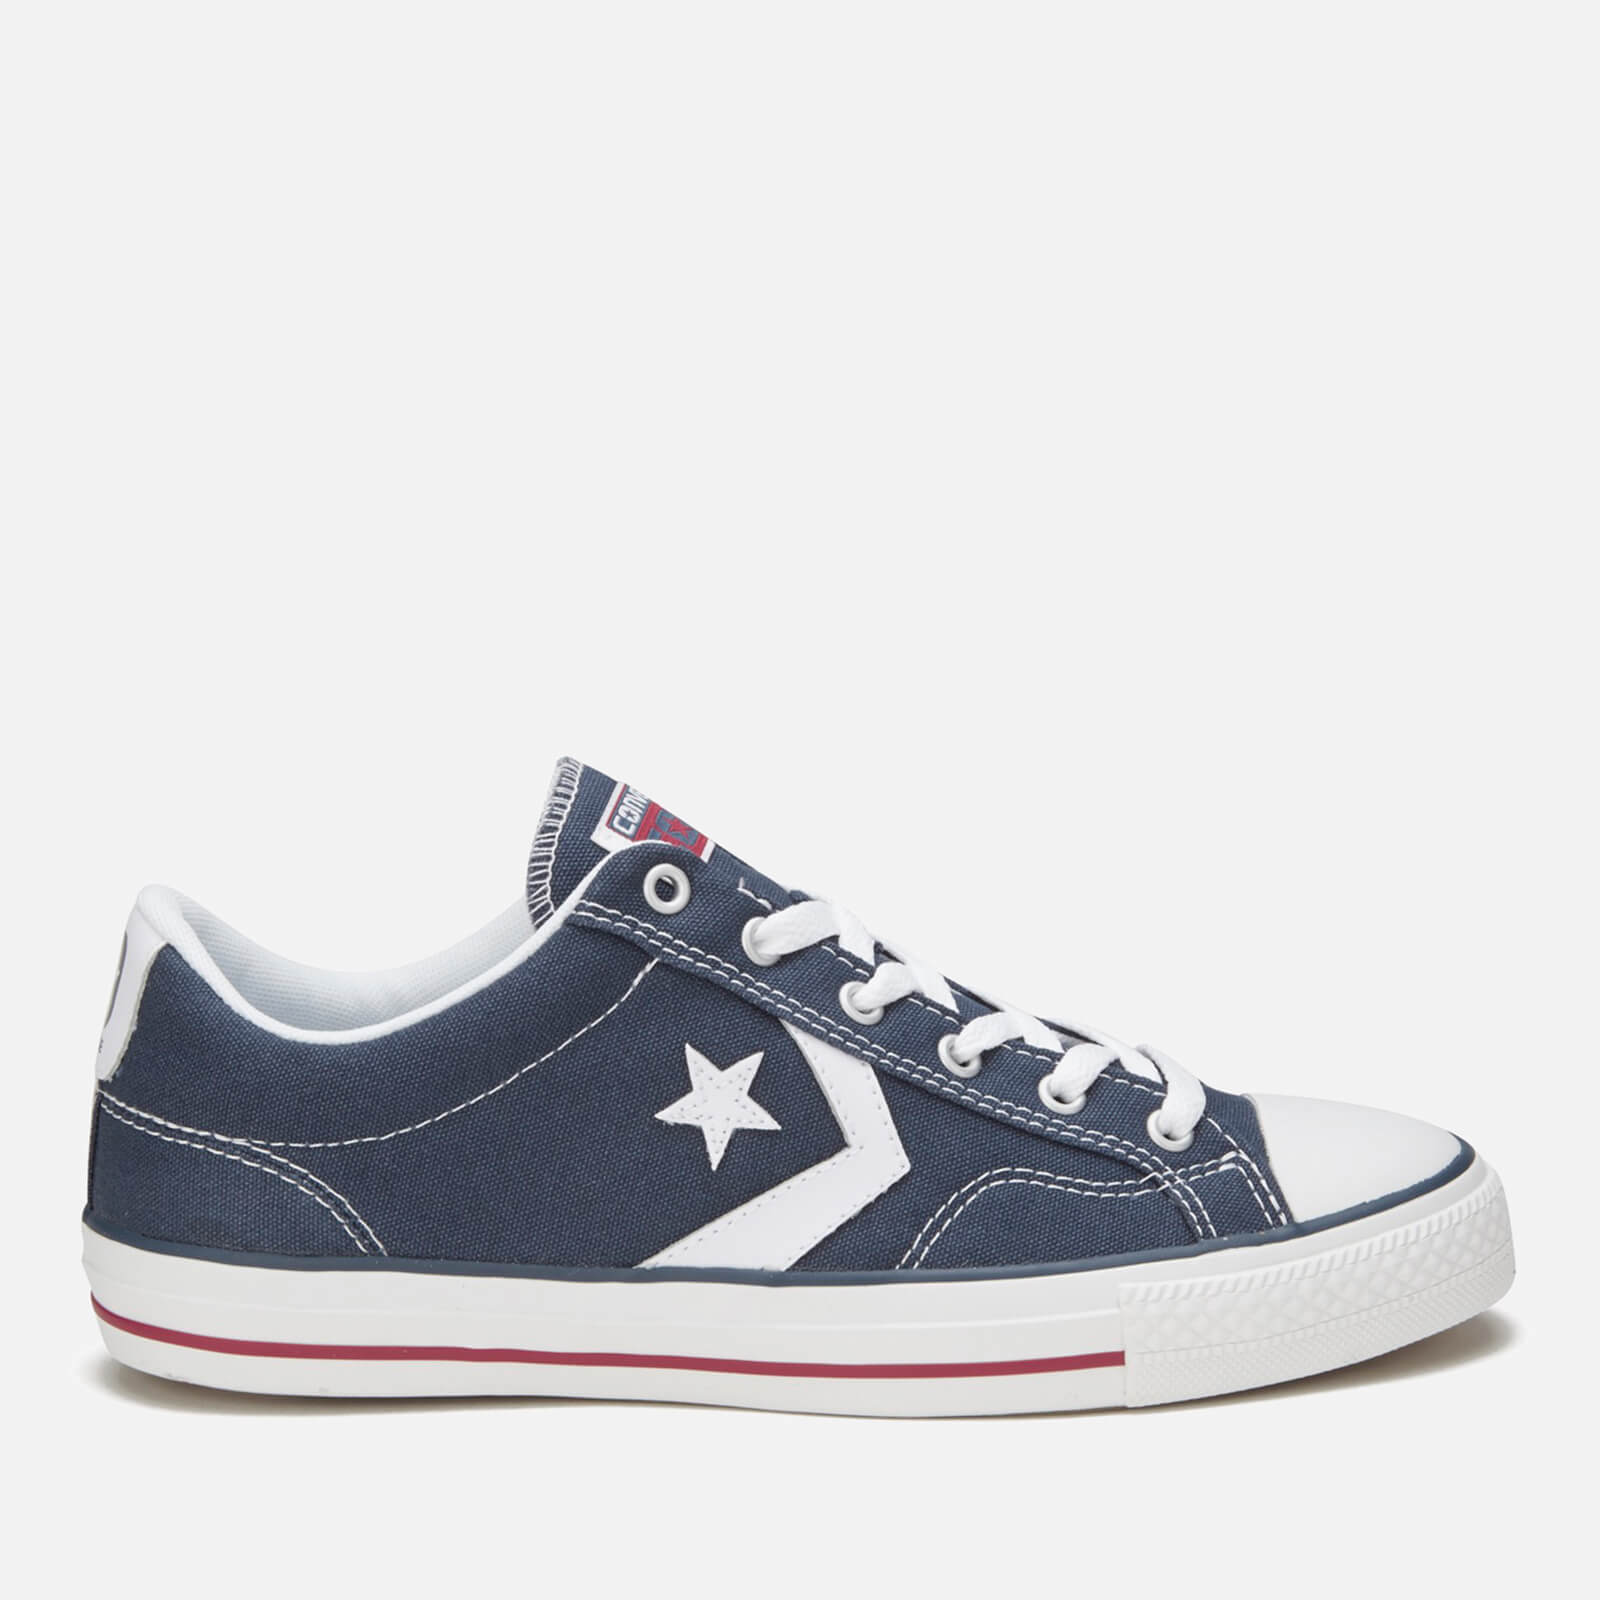 ba2577bdfdd2 Converse Men s Cons Star Player Canvas Trainers - Navy White Mens Footwear